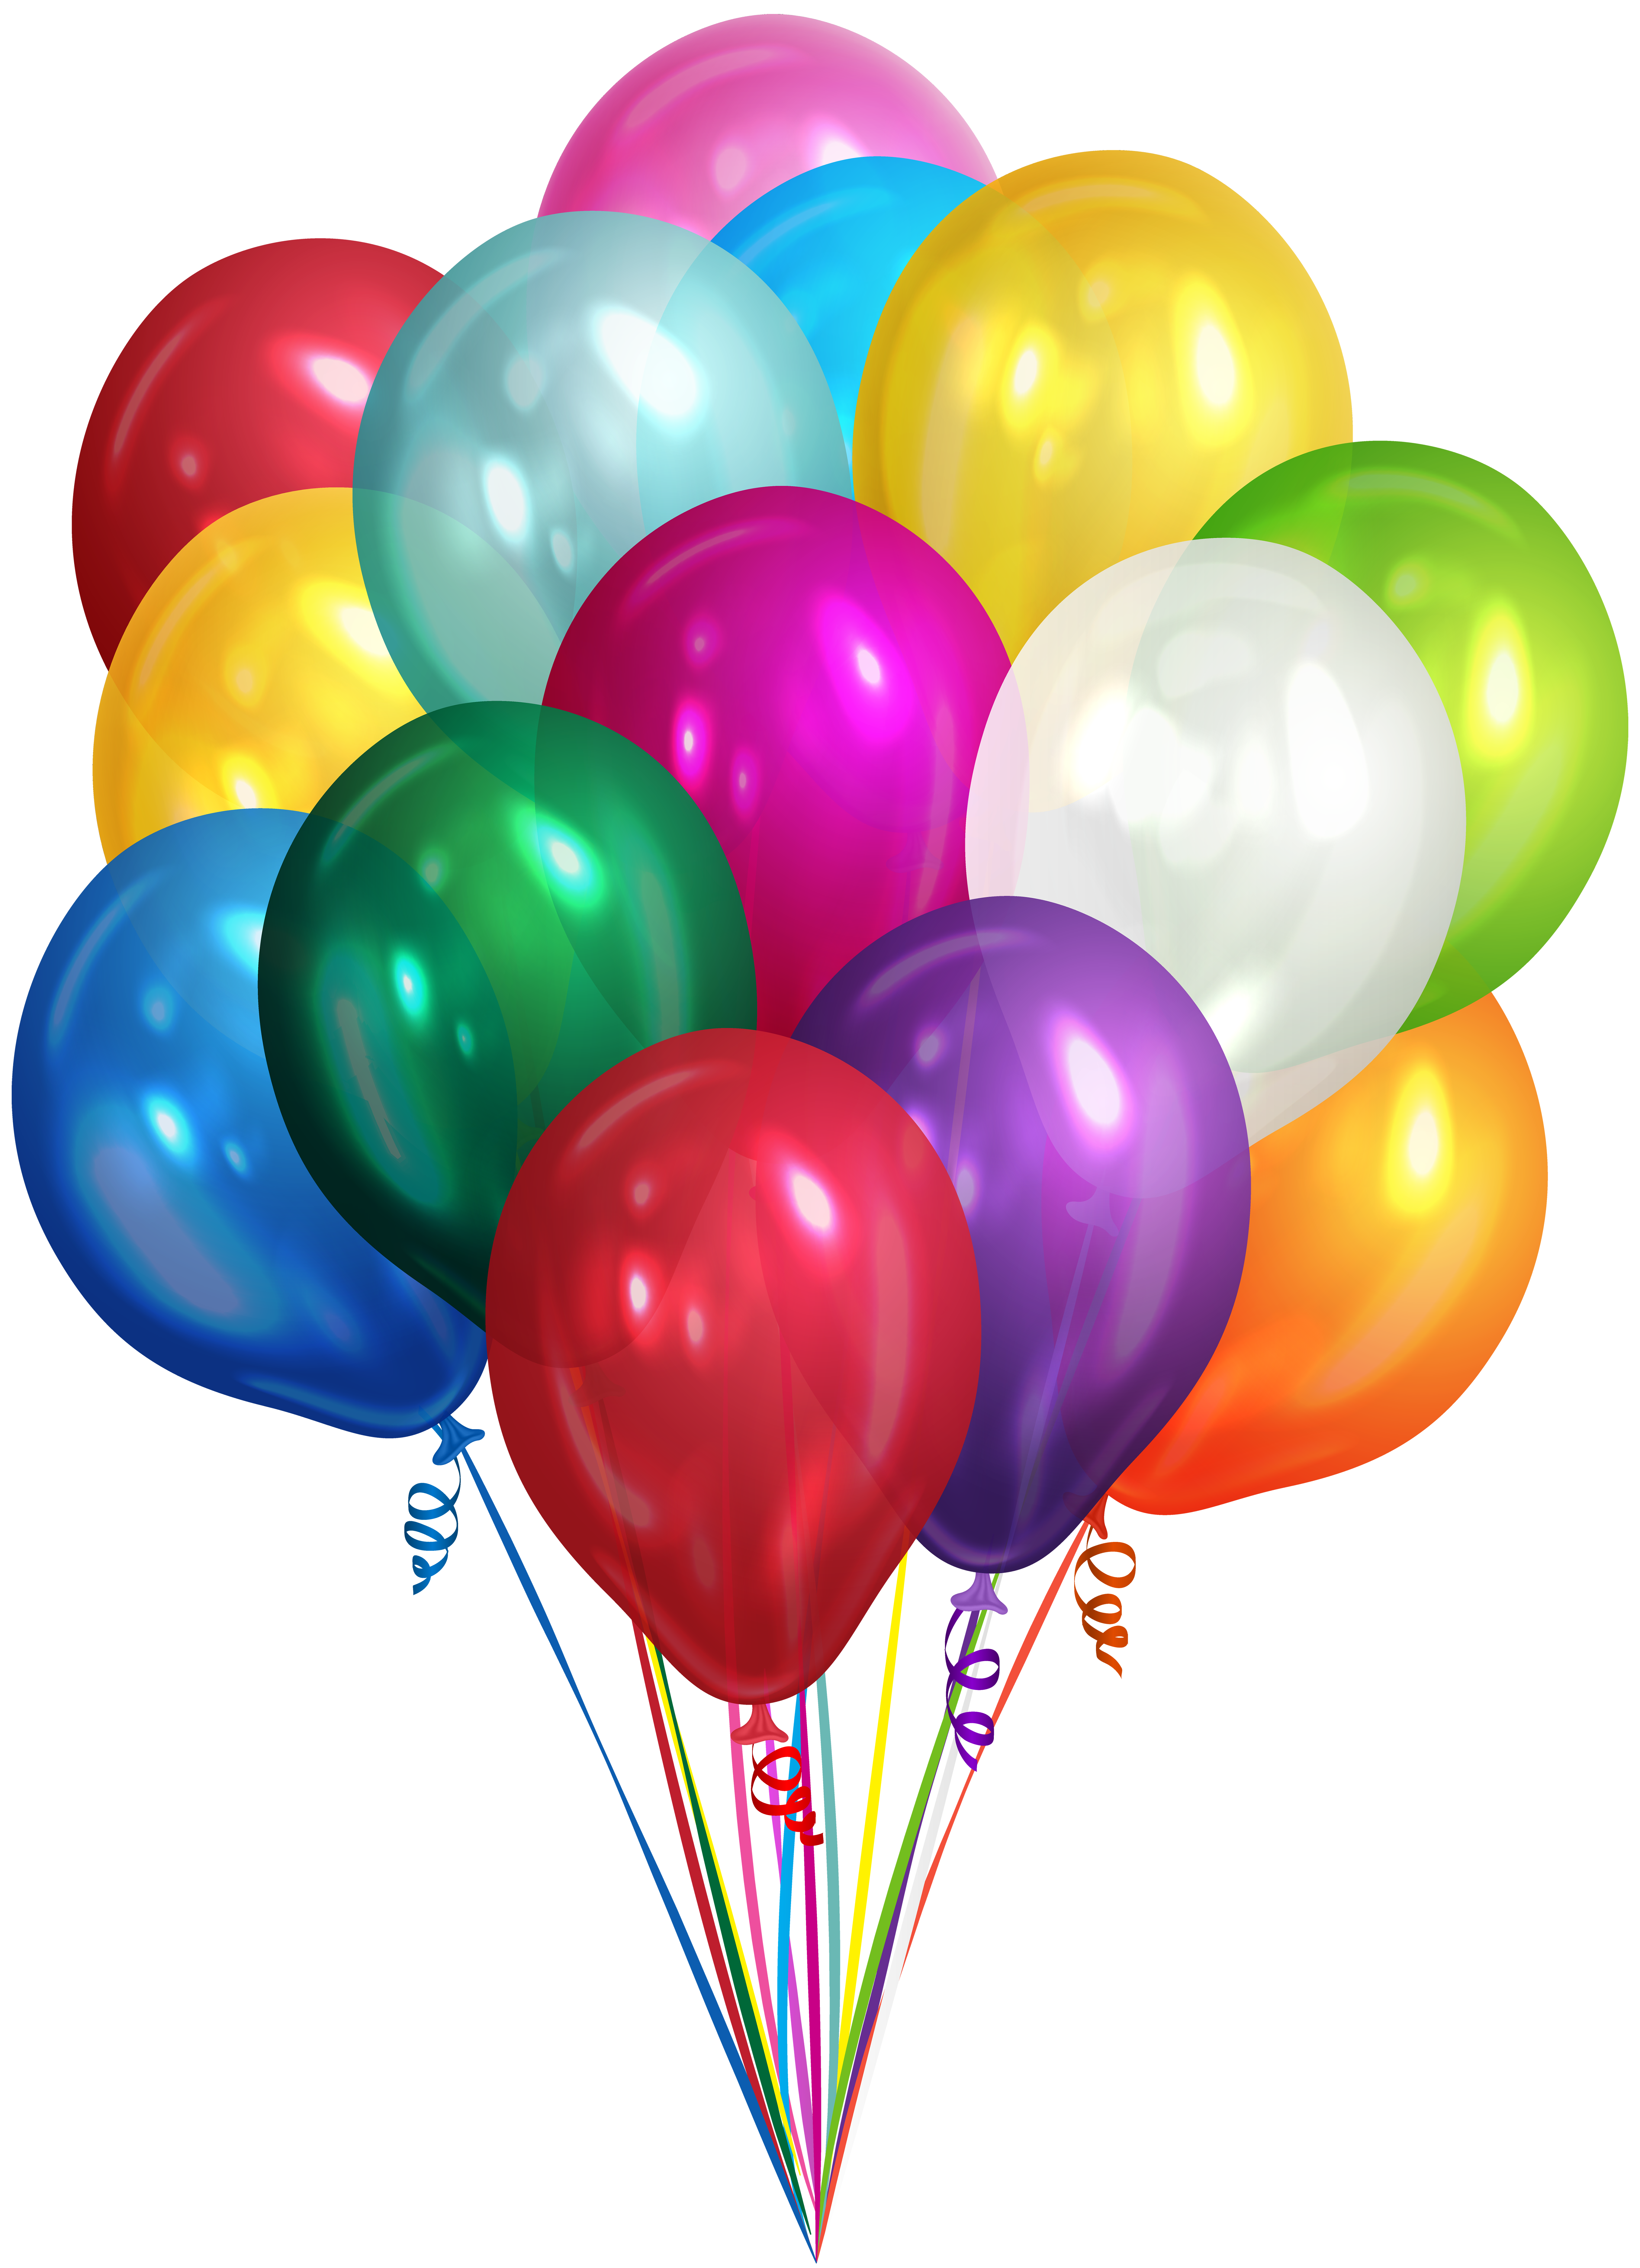 Bunch Of Balloons Transparent Clip Art Png Image Gallery Yopriceville High Quality Images And Transparent Png Free Cl Happy Birthday Png Balloons Clip Art